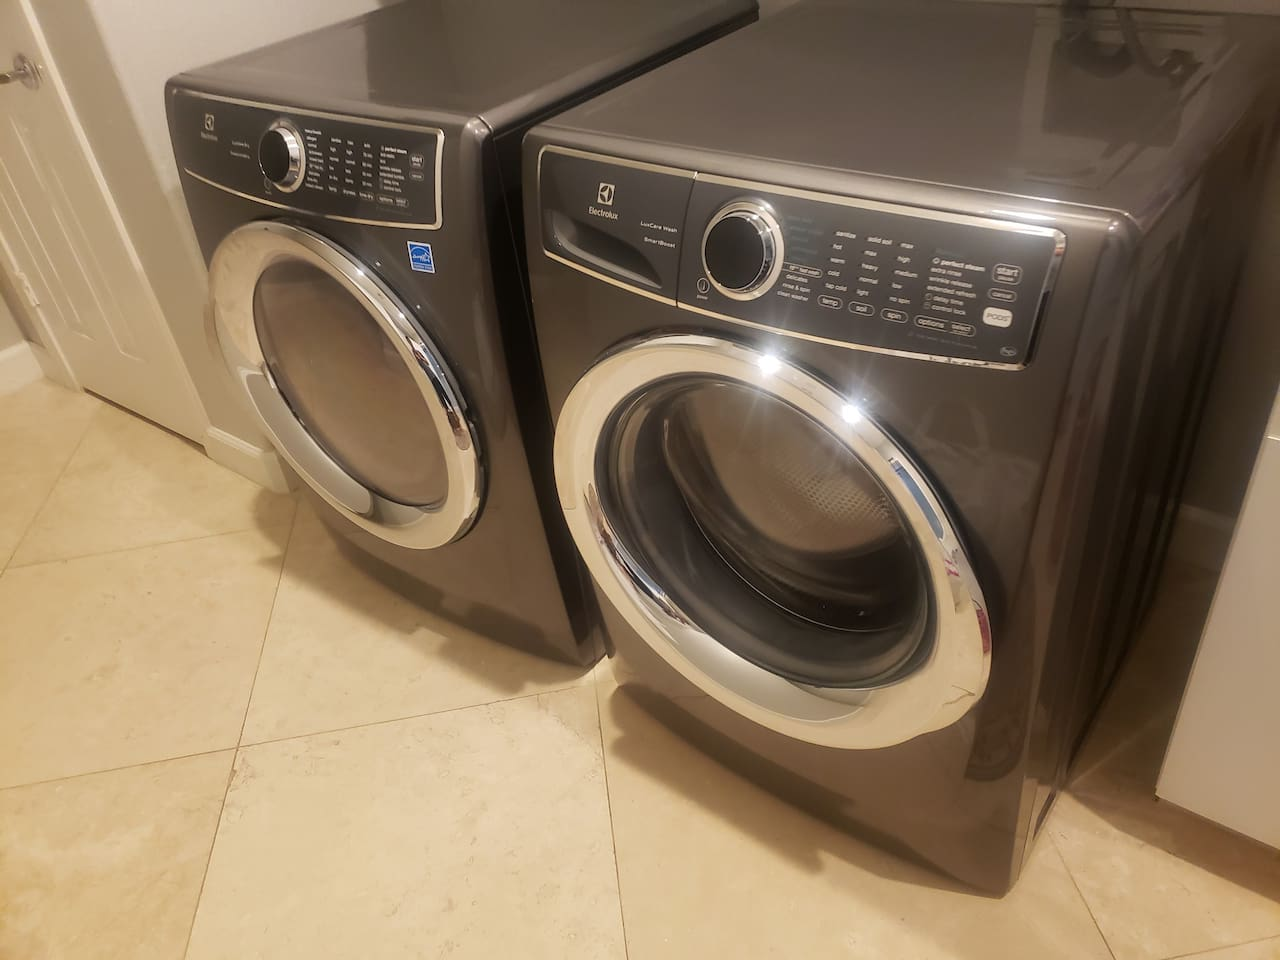 Brand new Electrolux washer and dryer